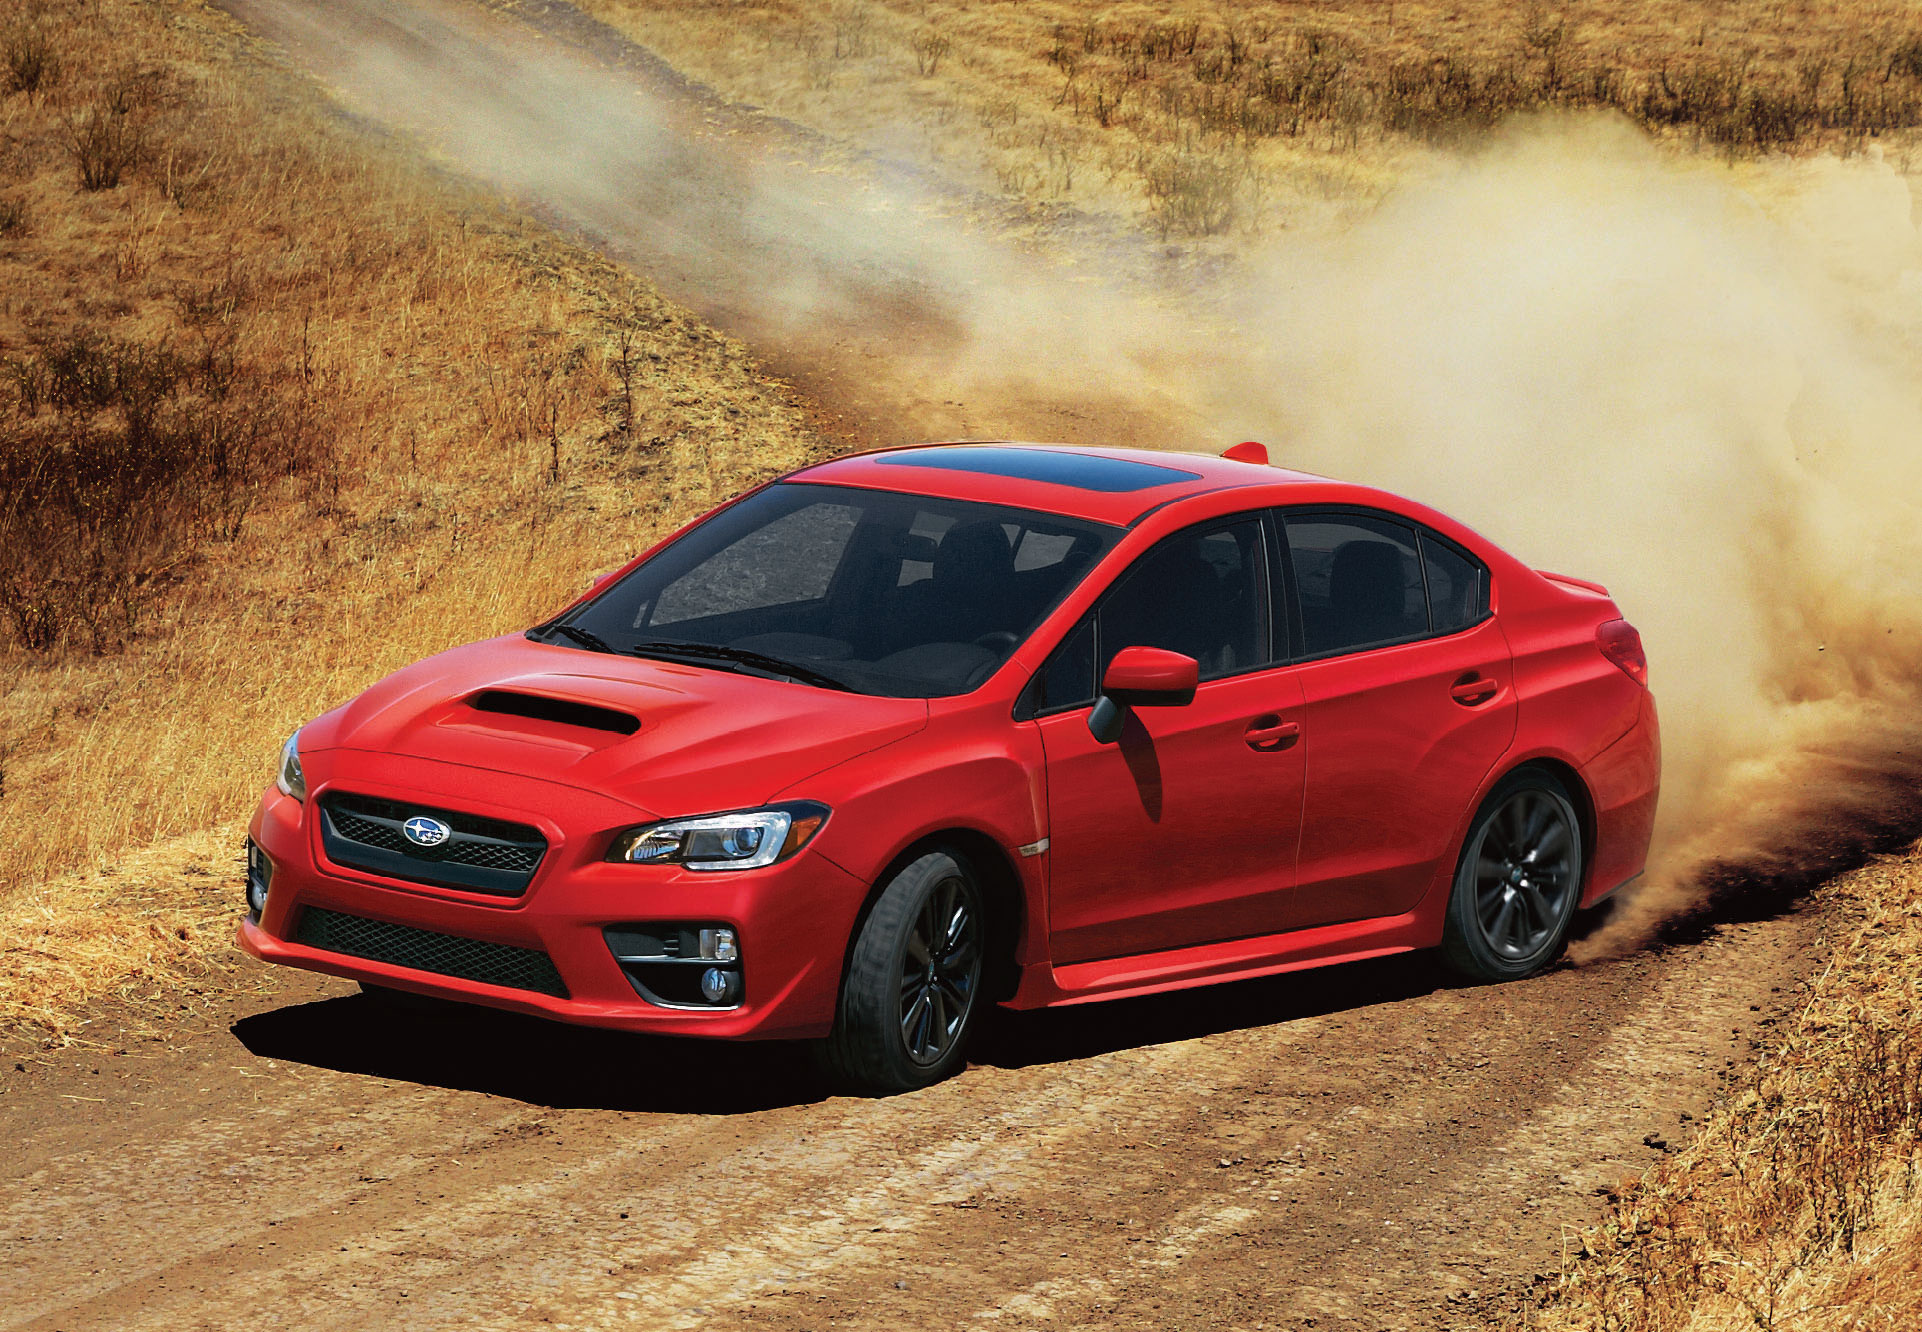 2015 Subaru Wrx Front Photo Red Color Drifting On